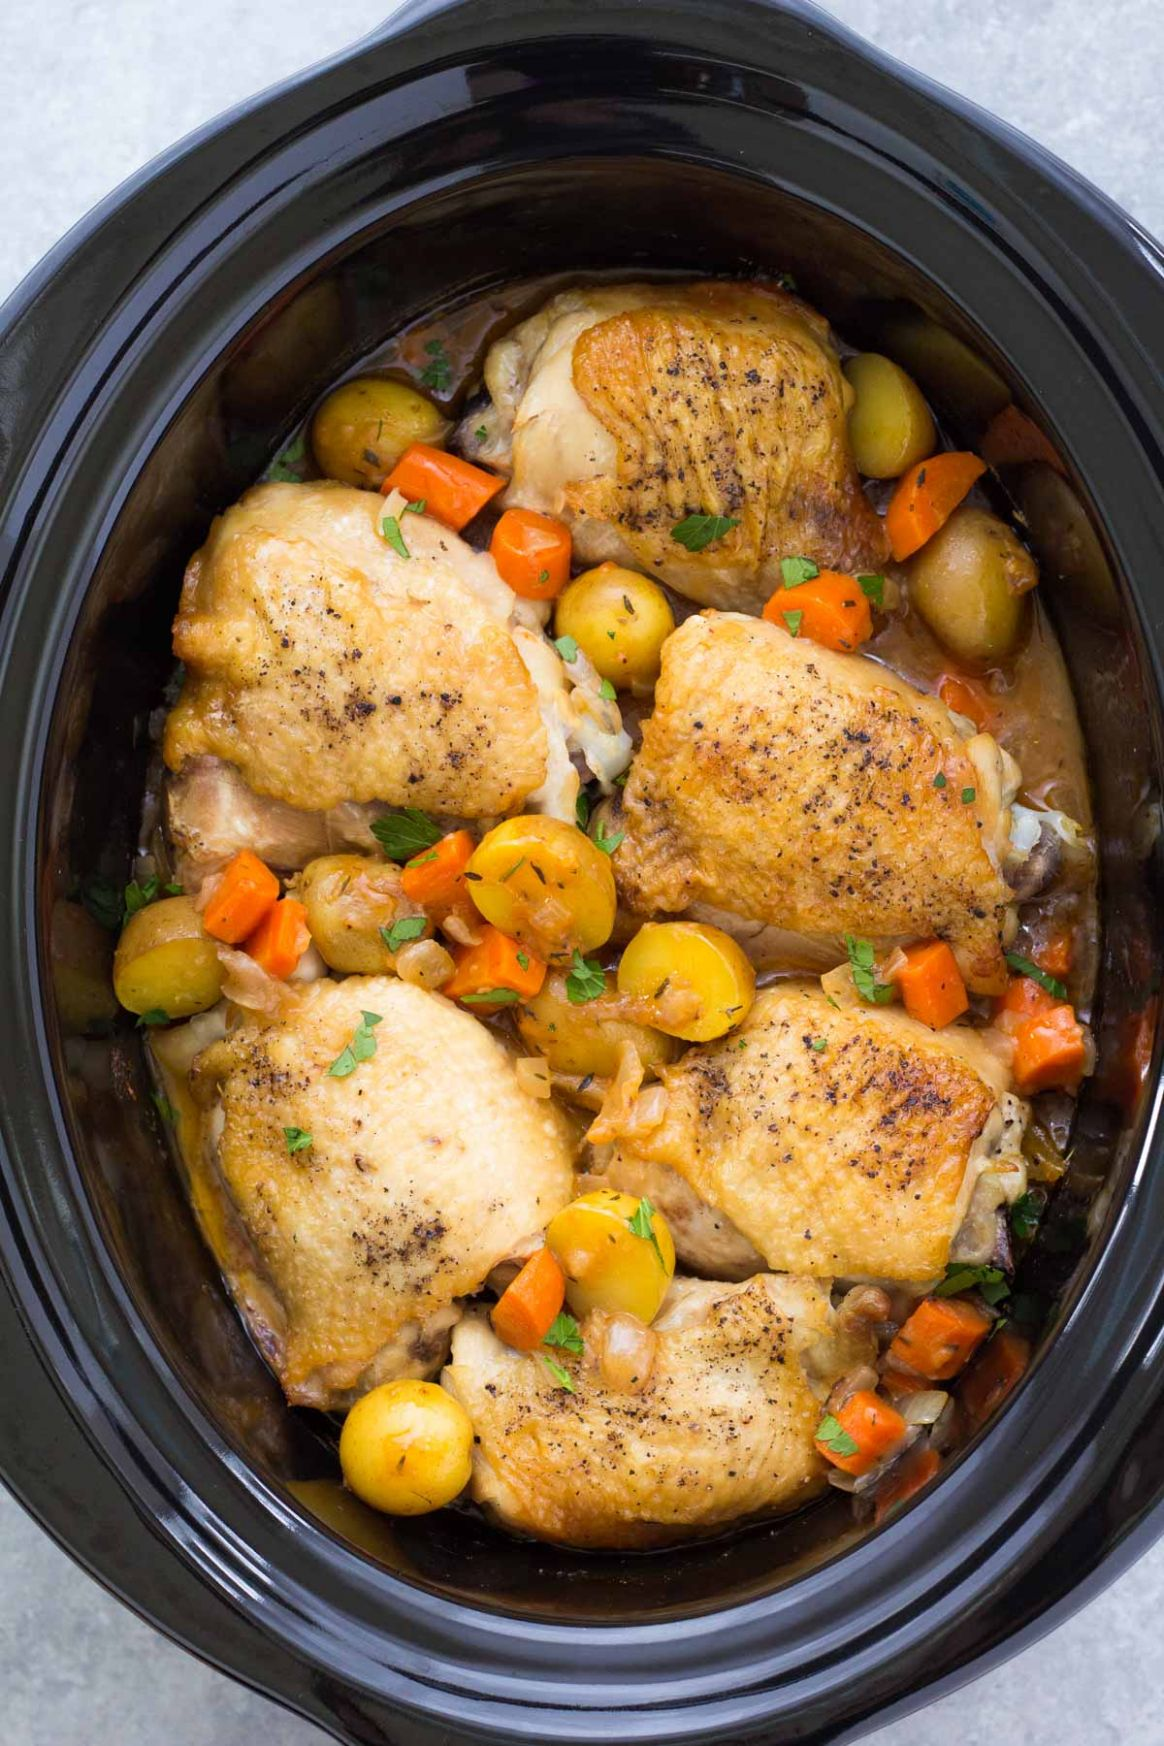 Crockpot Chicken and Potatoes - Crockpot Chicken Breast Recipes